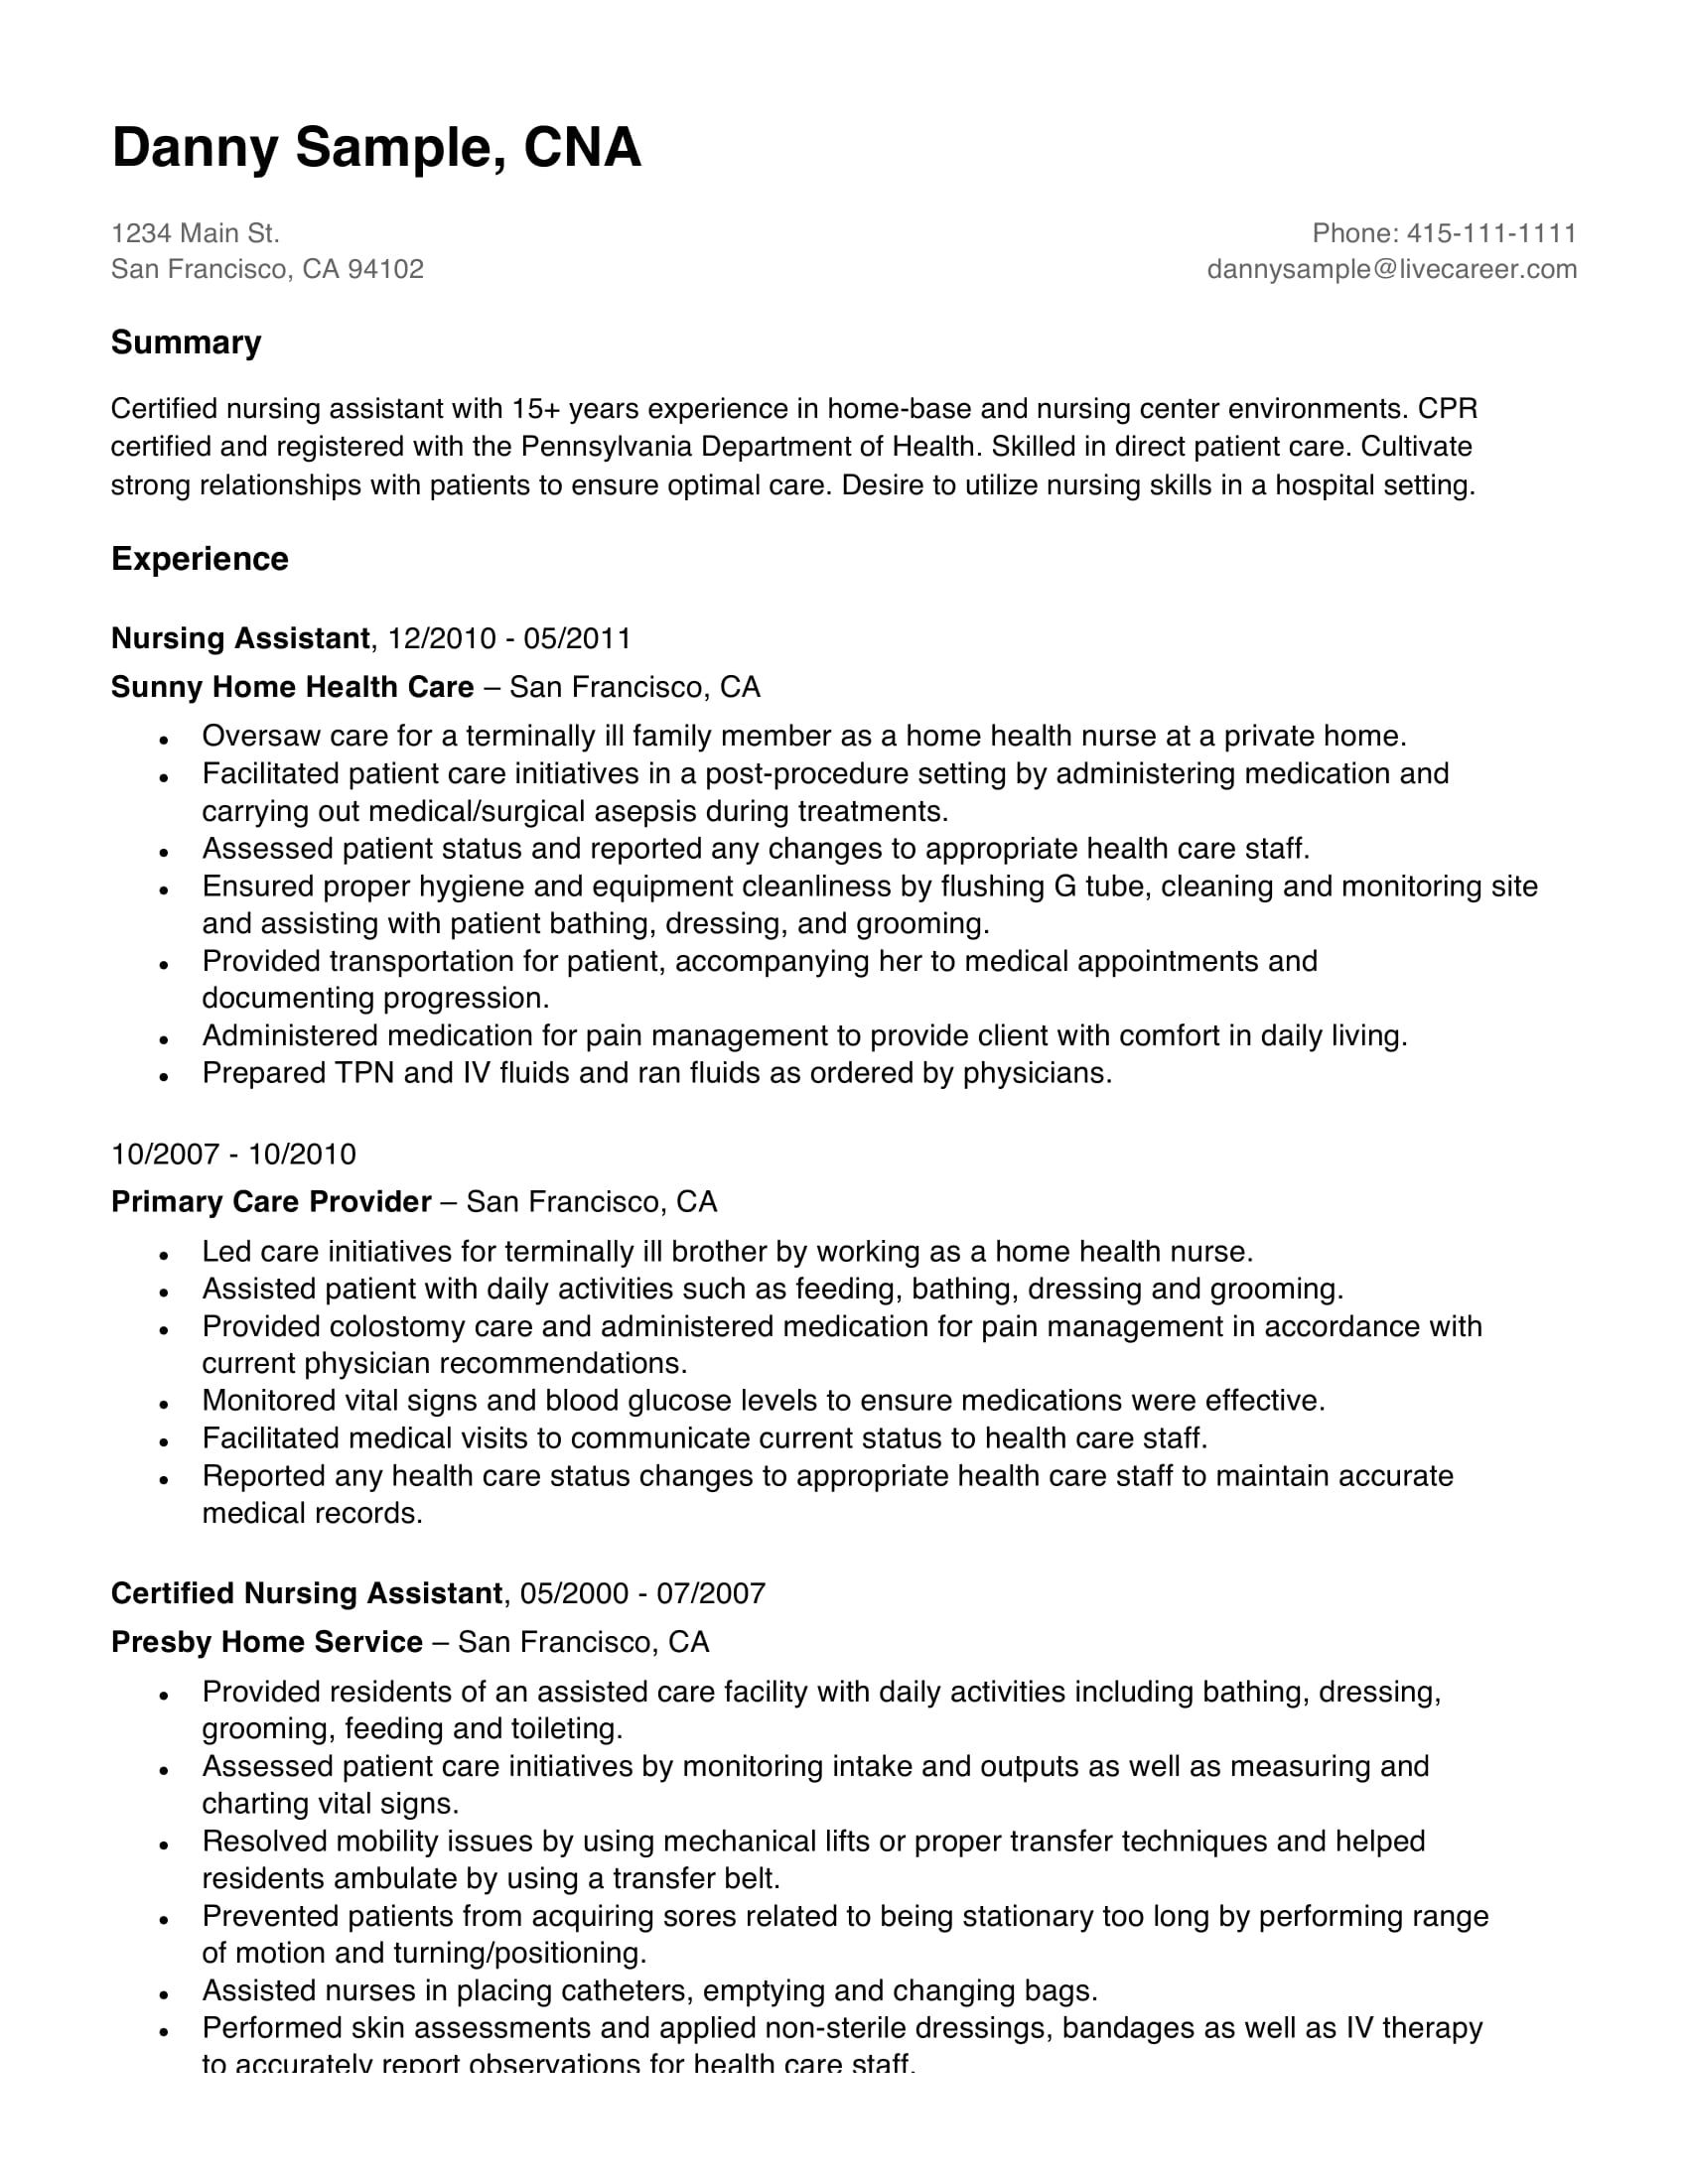 resume professional summary for career change